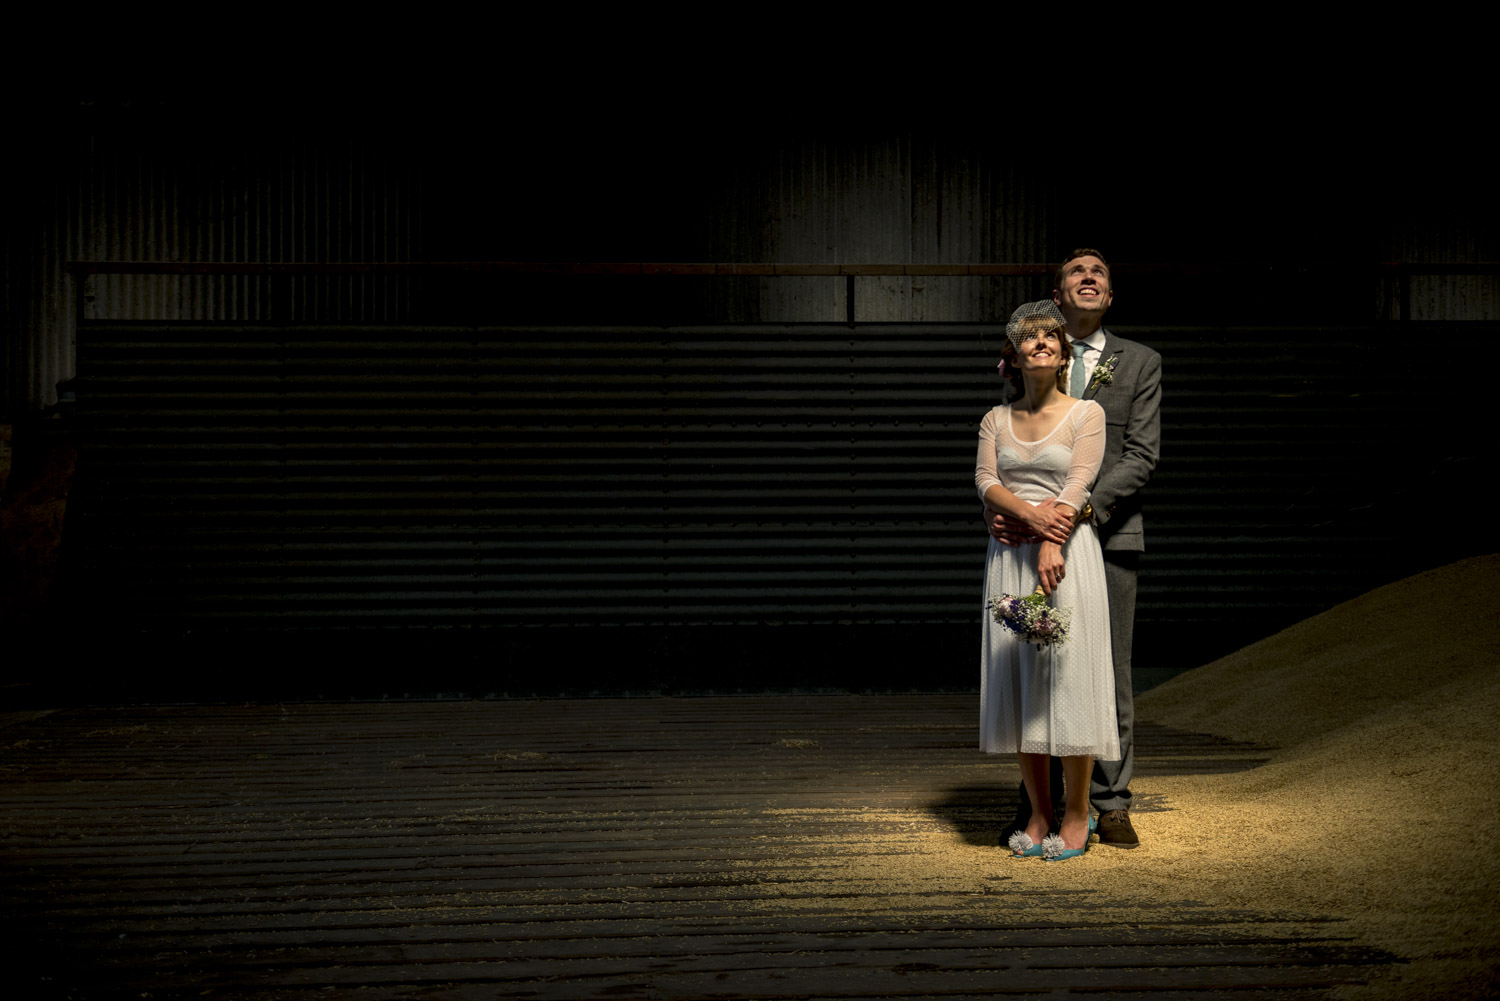 10-fun-grittenham-barn-wedding.jpg